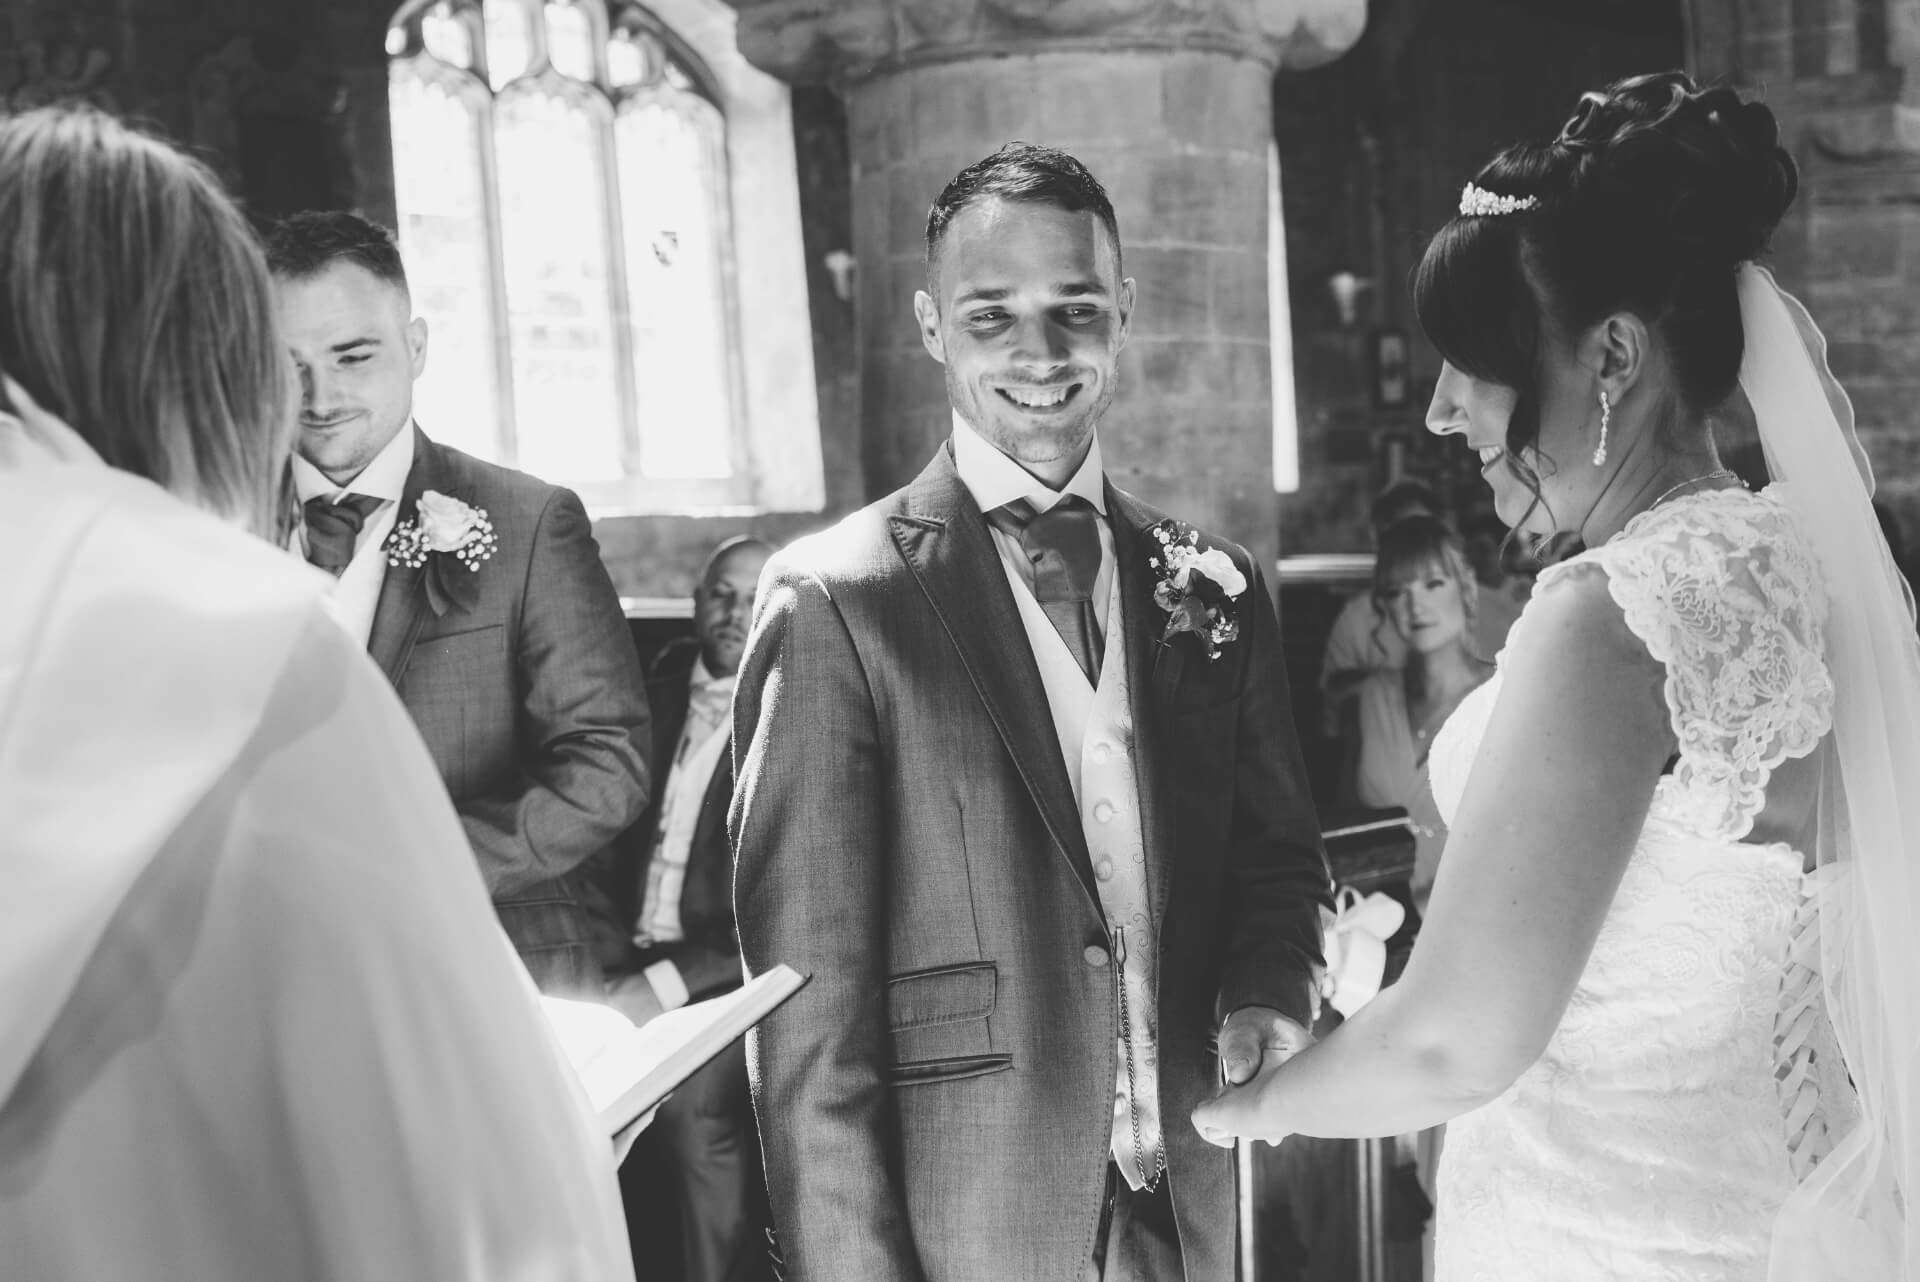 Whaplode Church Bride and Groom taking each others hands  - Lincolnshire wedding photographer Slice of Life Photography